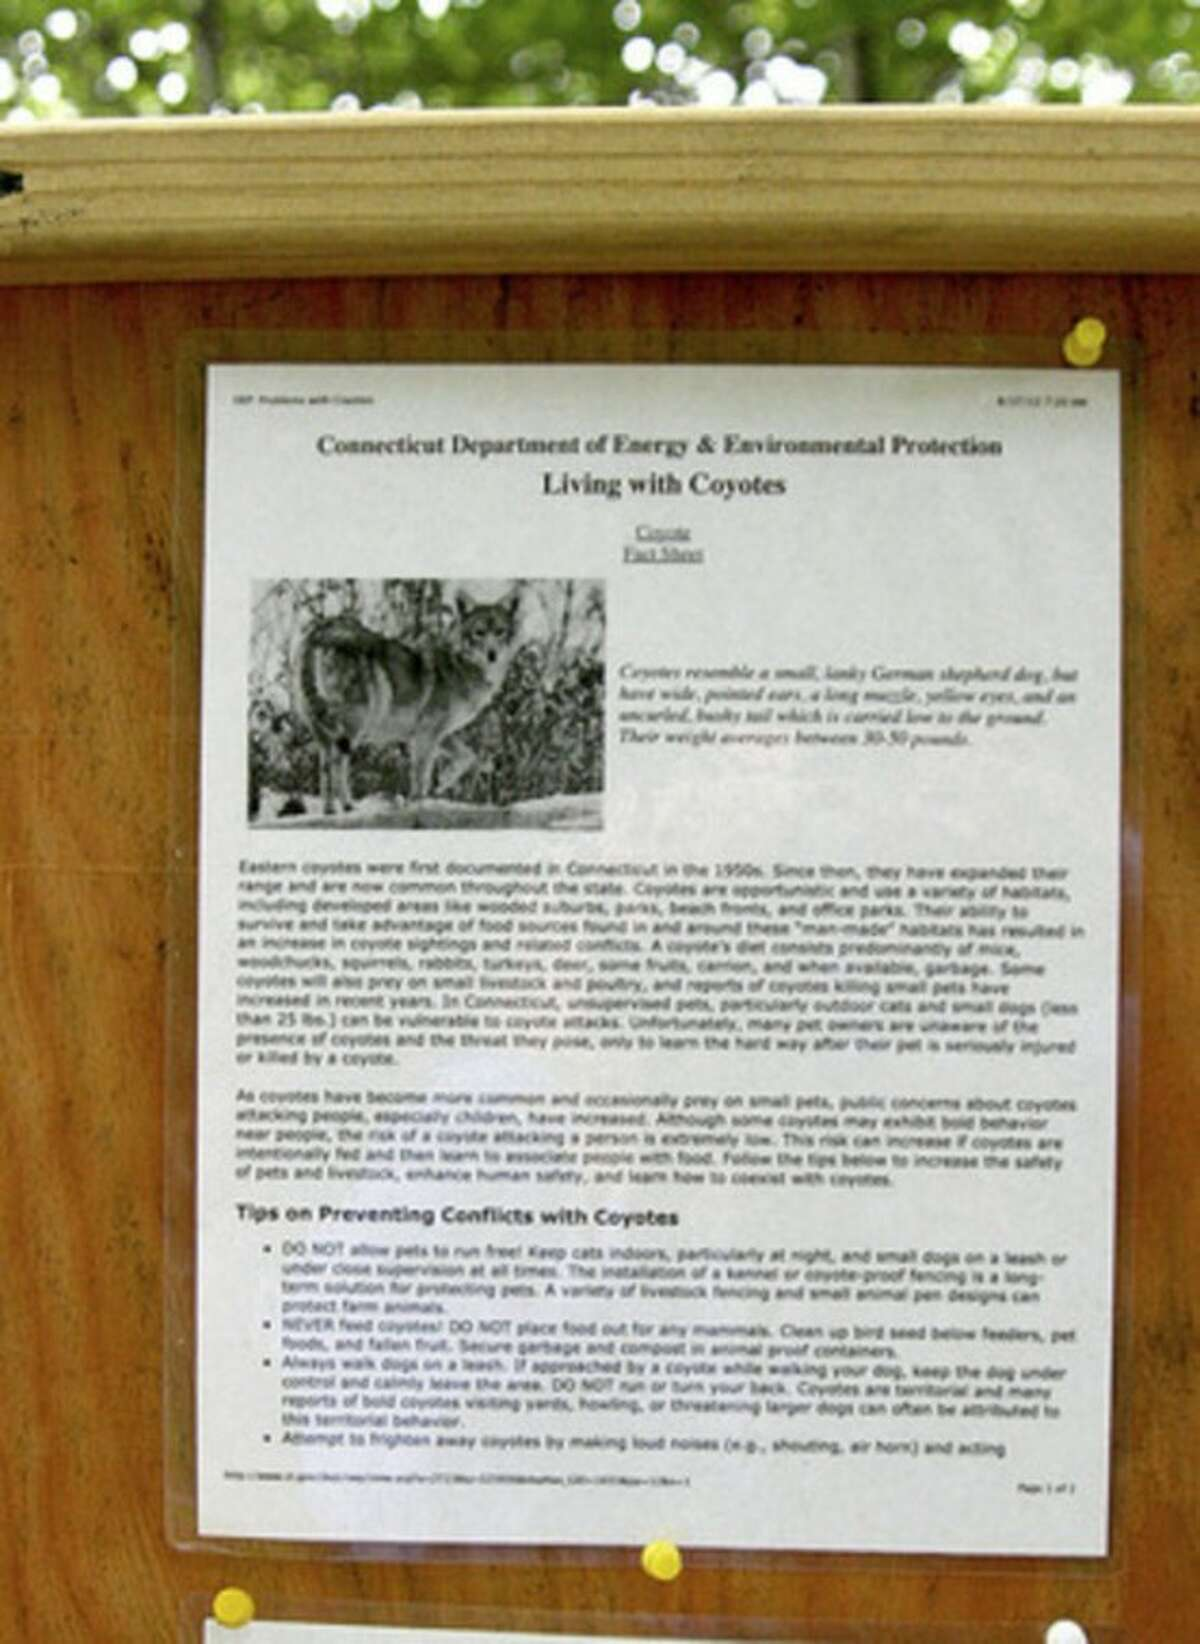 Information about coyotes is posted at the Taylor Woods/Tall Pines preserve in Weston. Photo by Chris Bosak